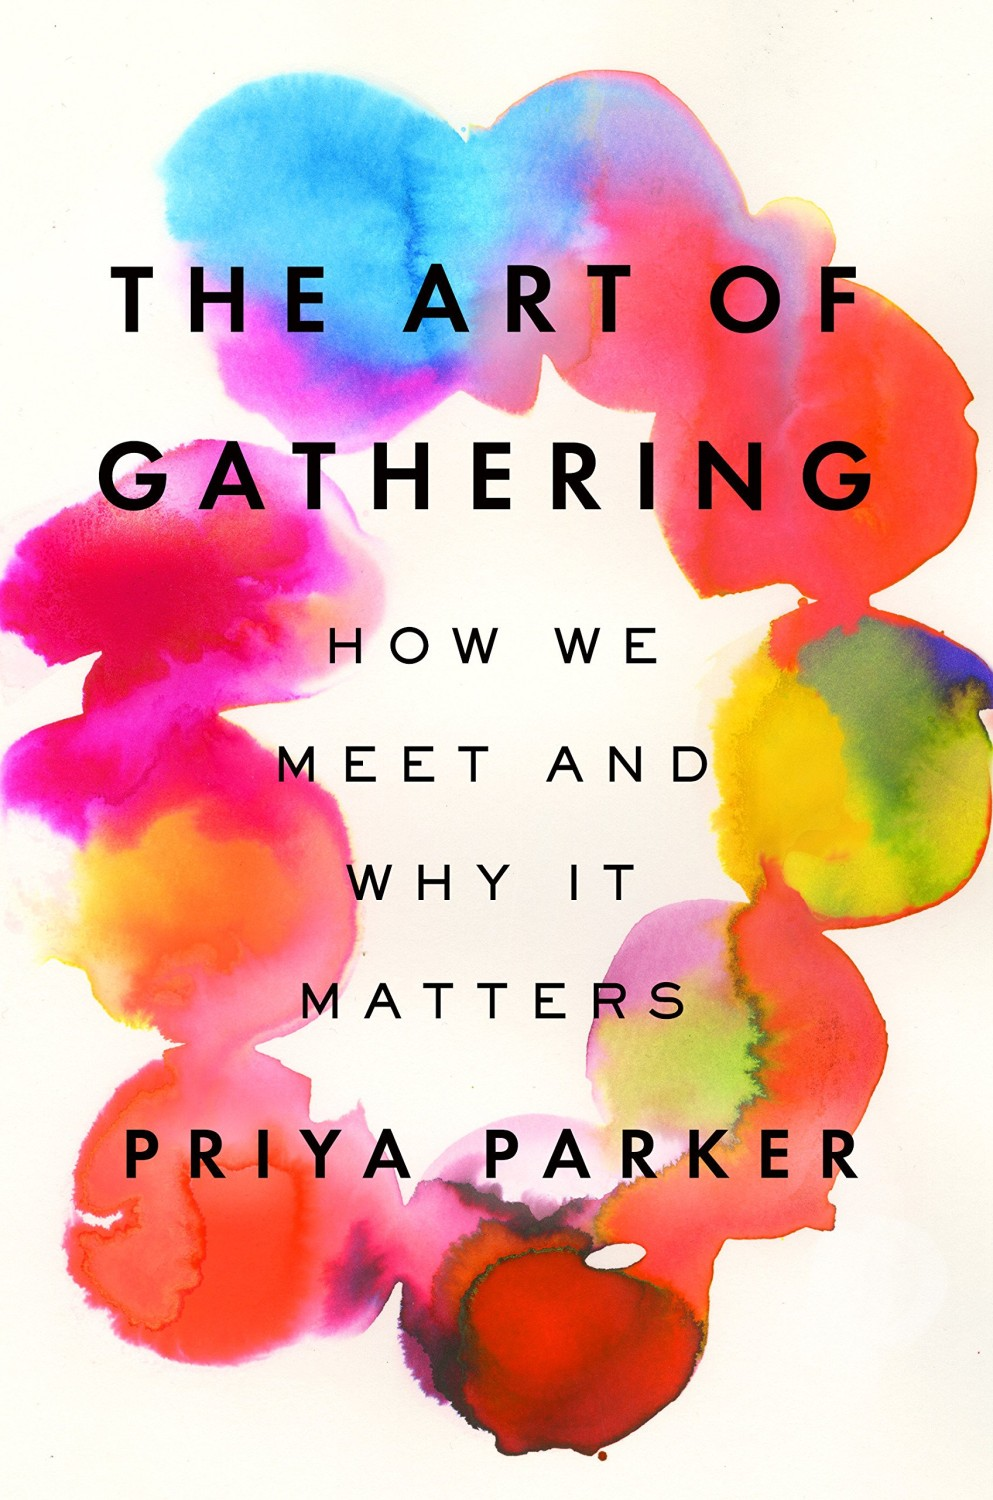 """Cover photo of the book, """"The Art of Gathering"""" by Priya Parker"""